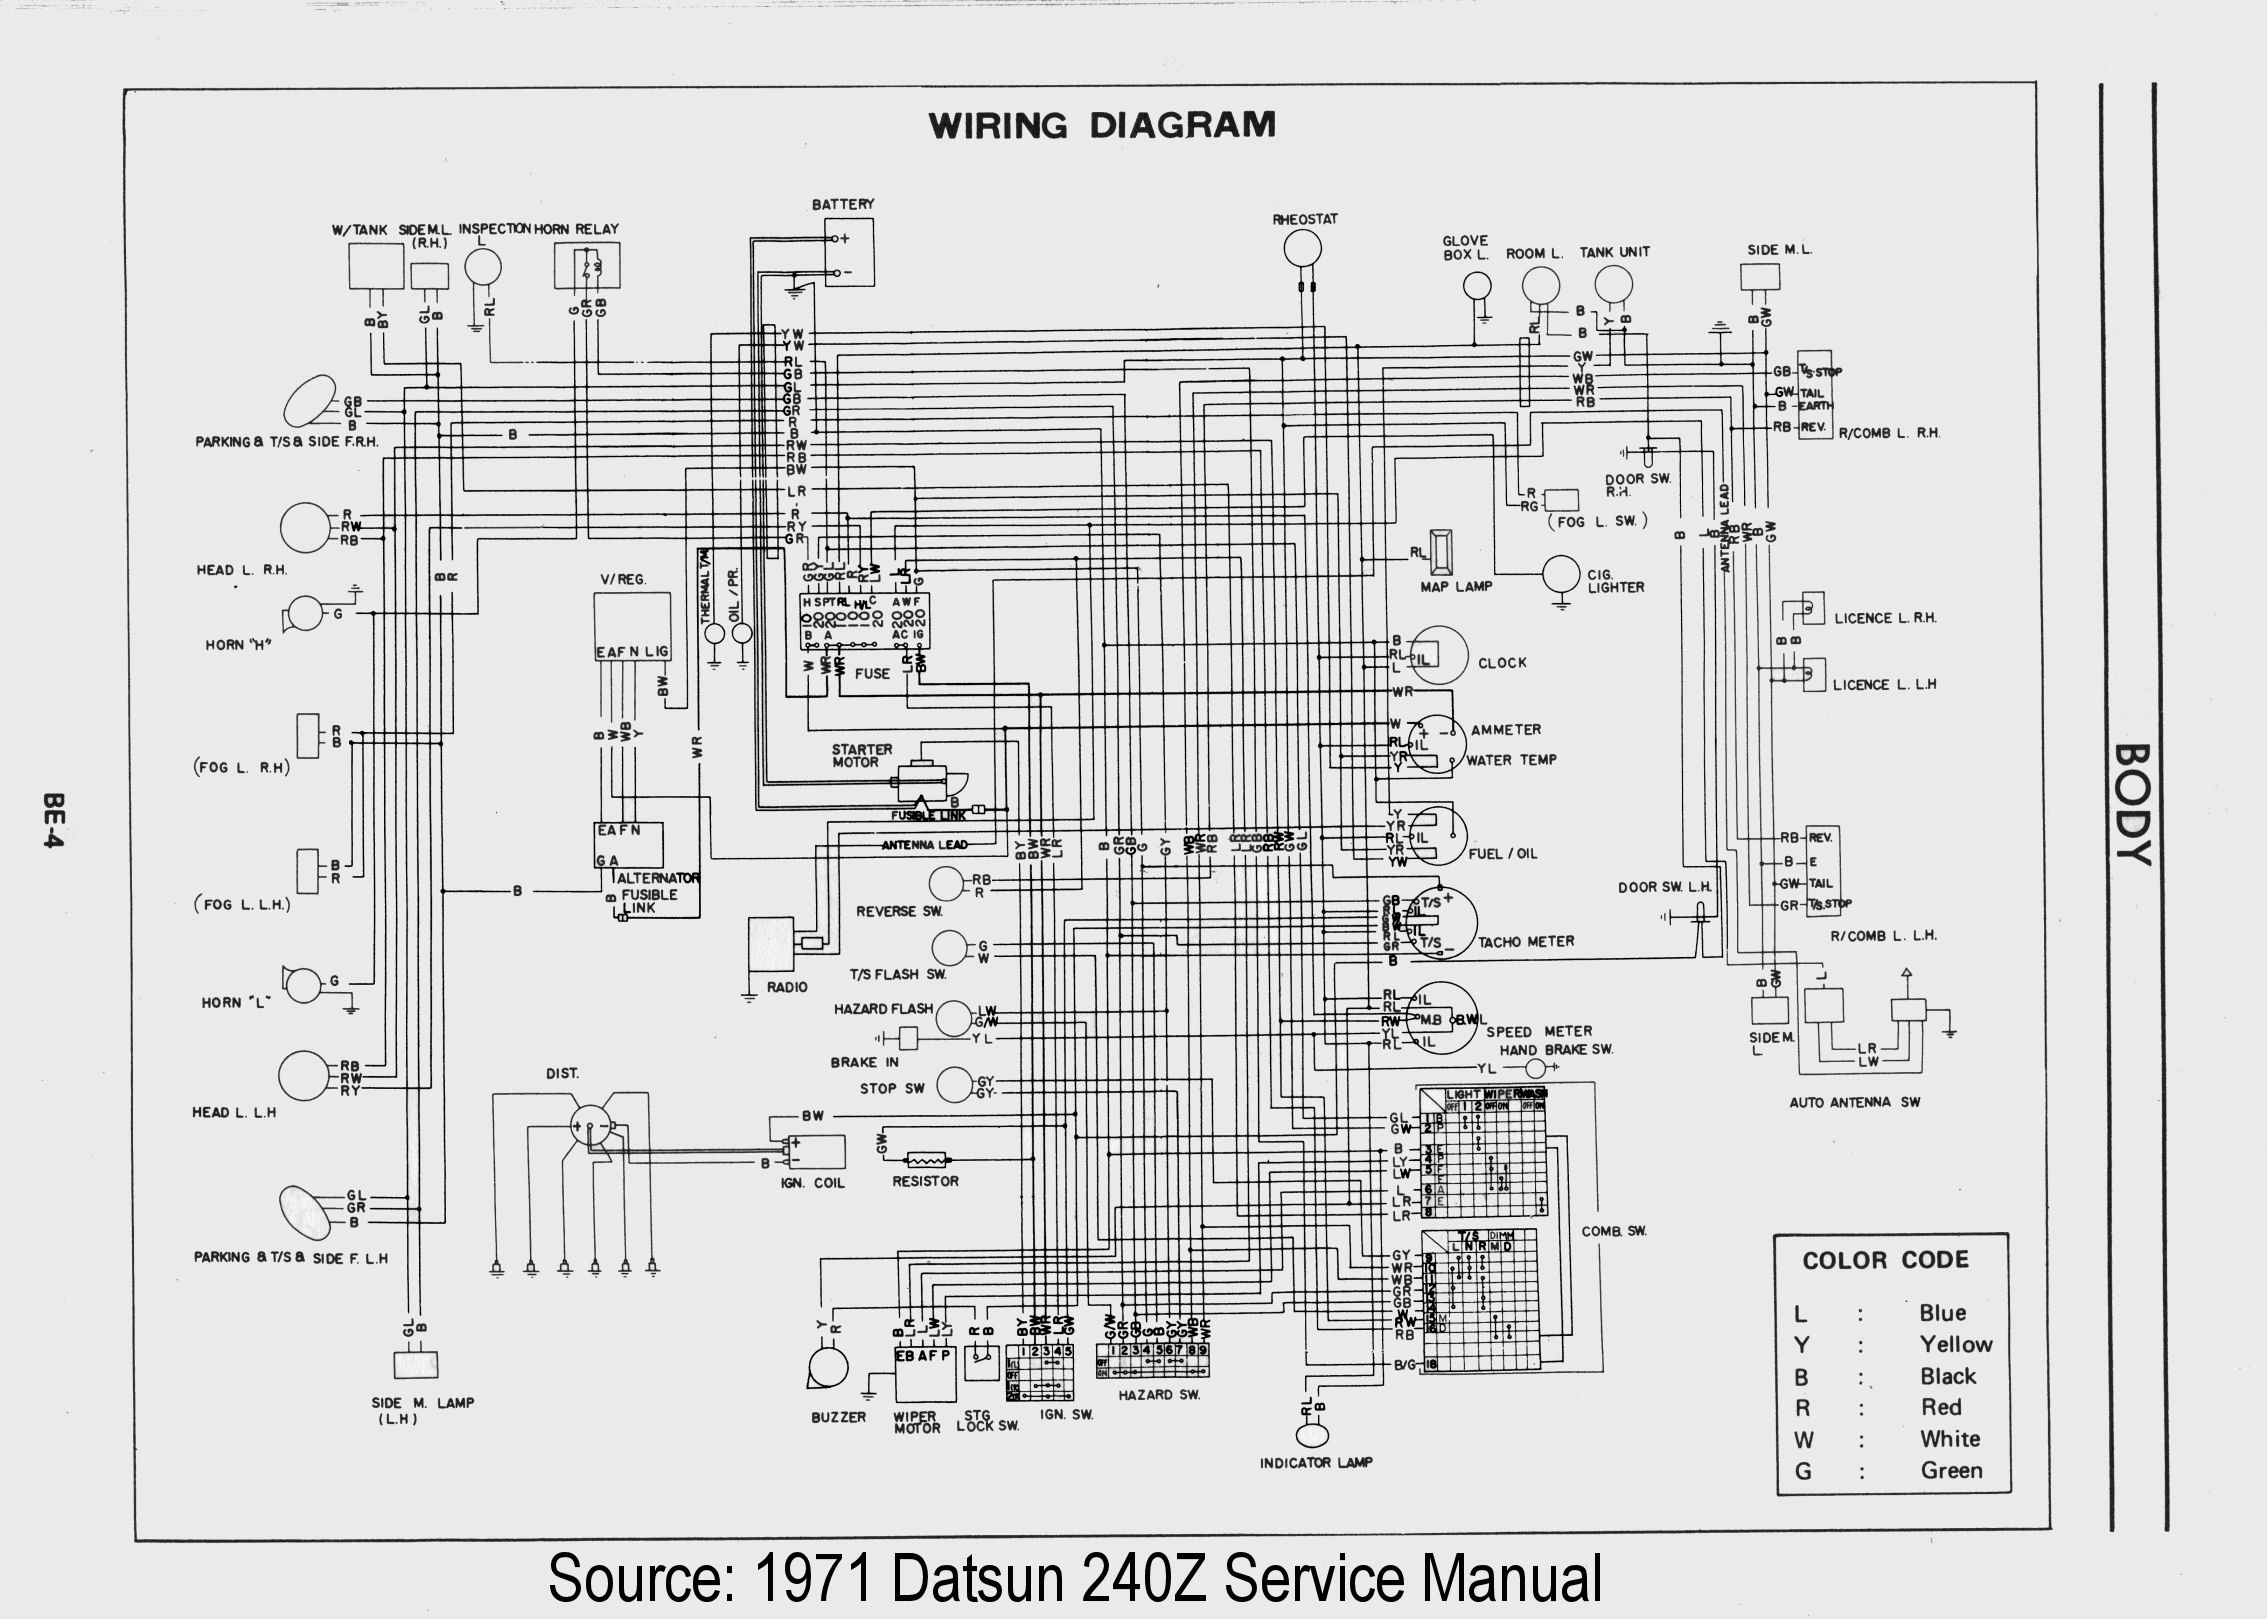 generic wiring troubleshooting checklist woodworkerb rh woodworkerb com datsun 240z dash wiring diagram datsun 240z wiring diagram